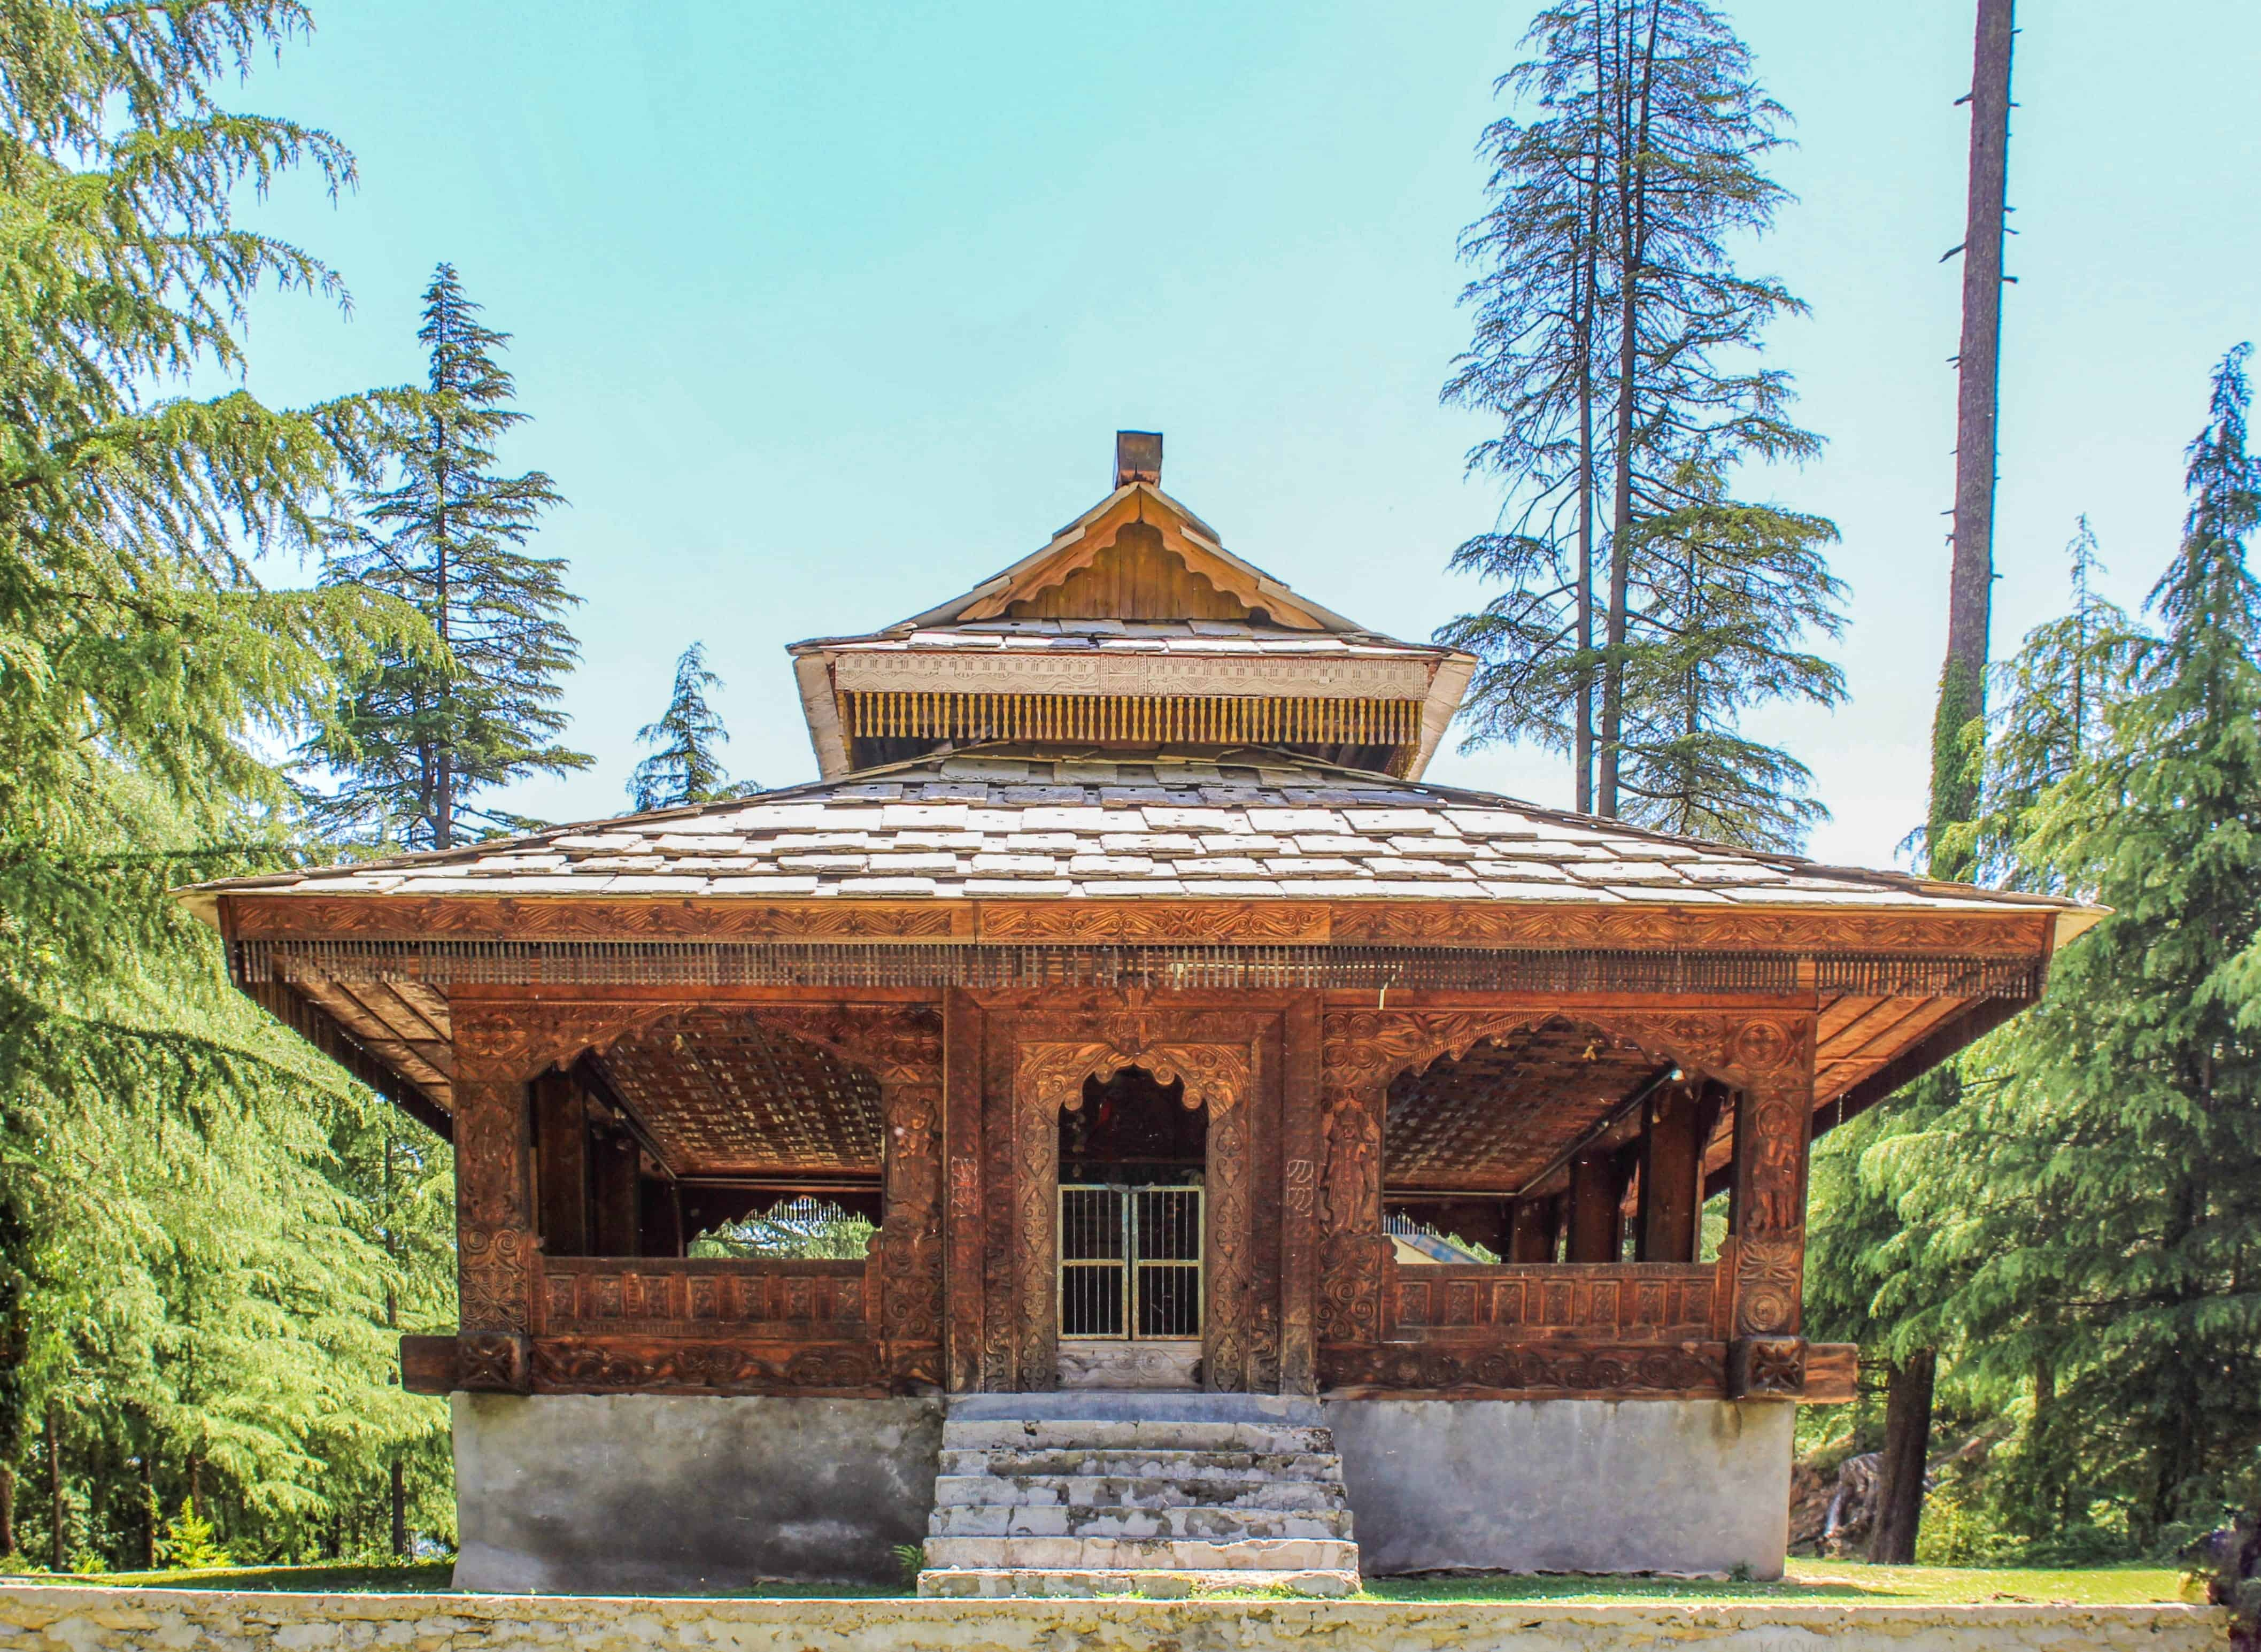 An ancient wooden temple in Sainj Valley